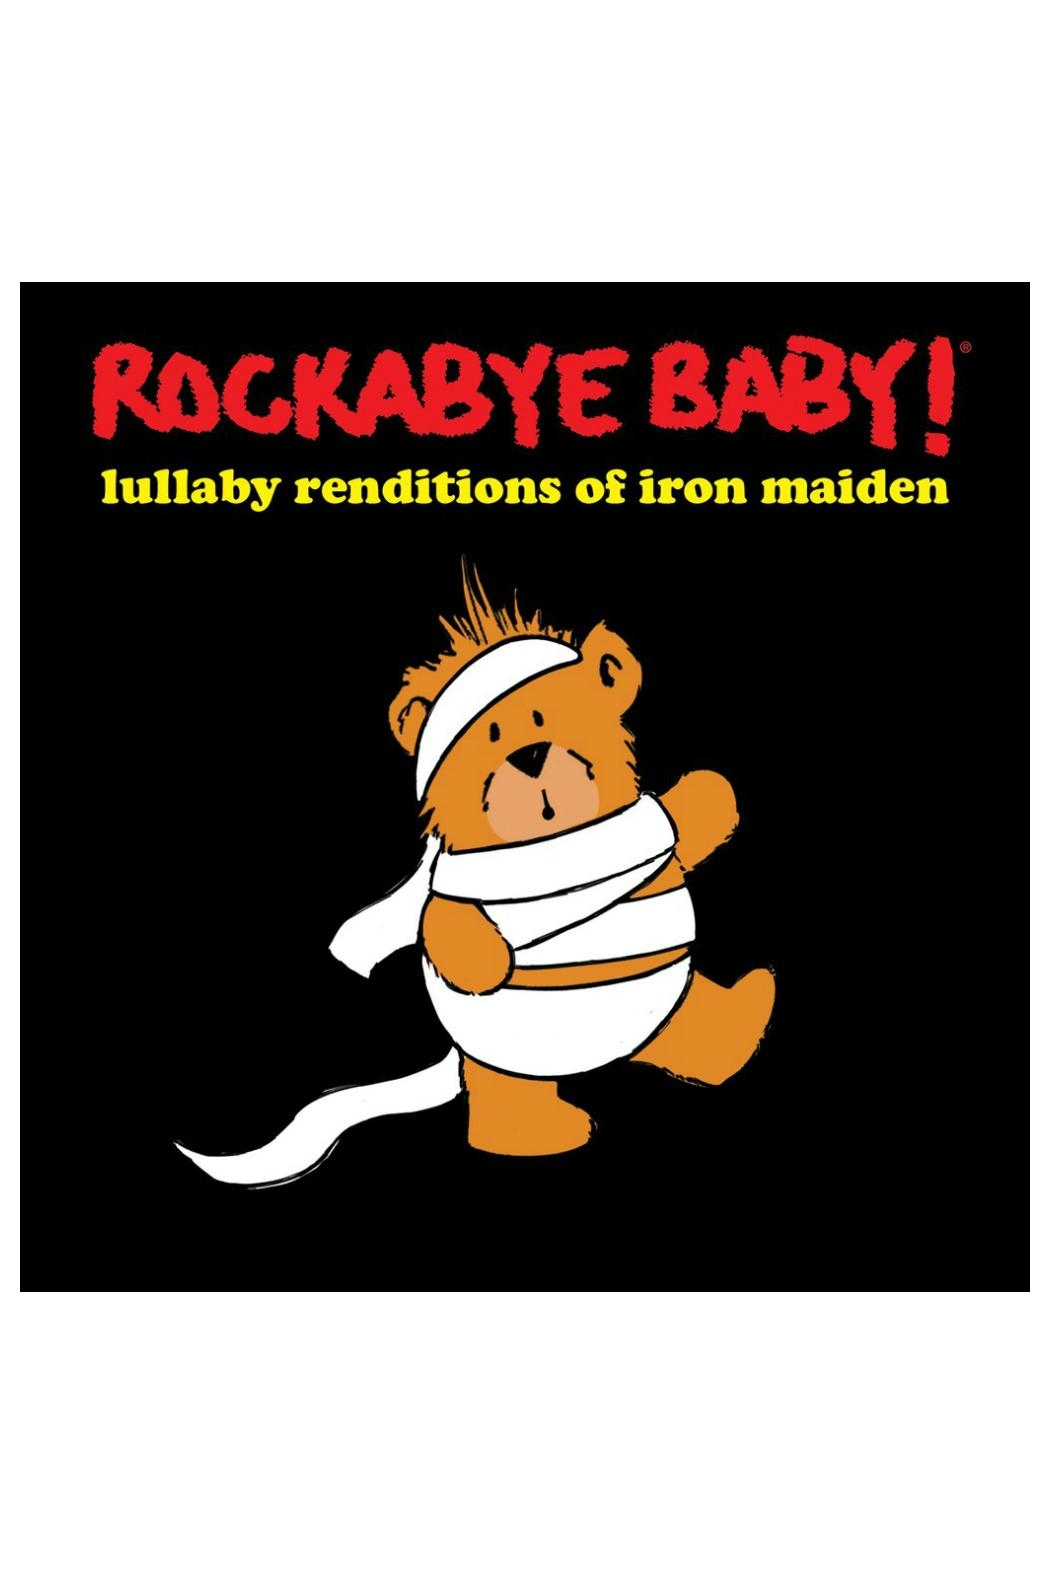 Must Have Rock Lullaby Cd's - Main Image